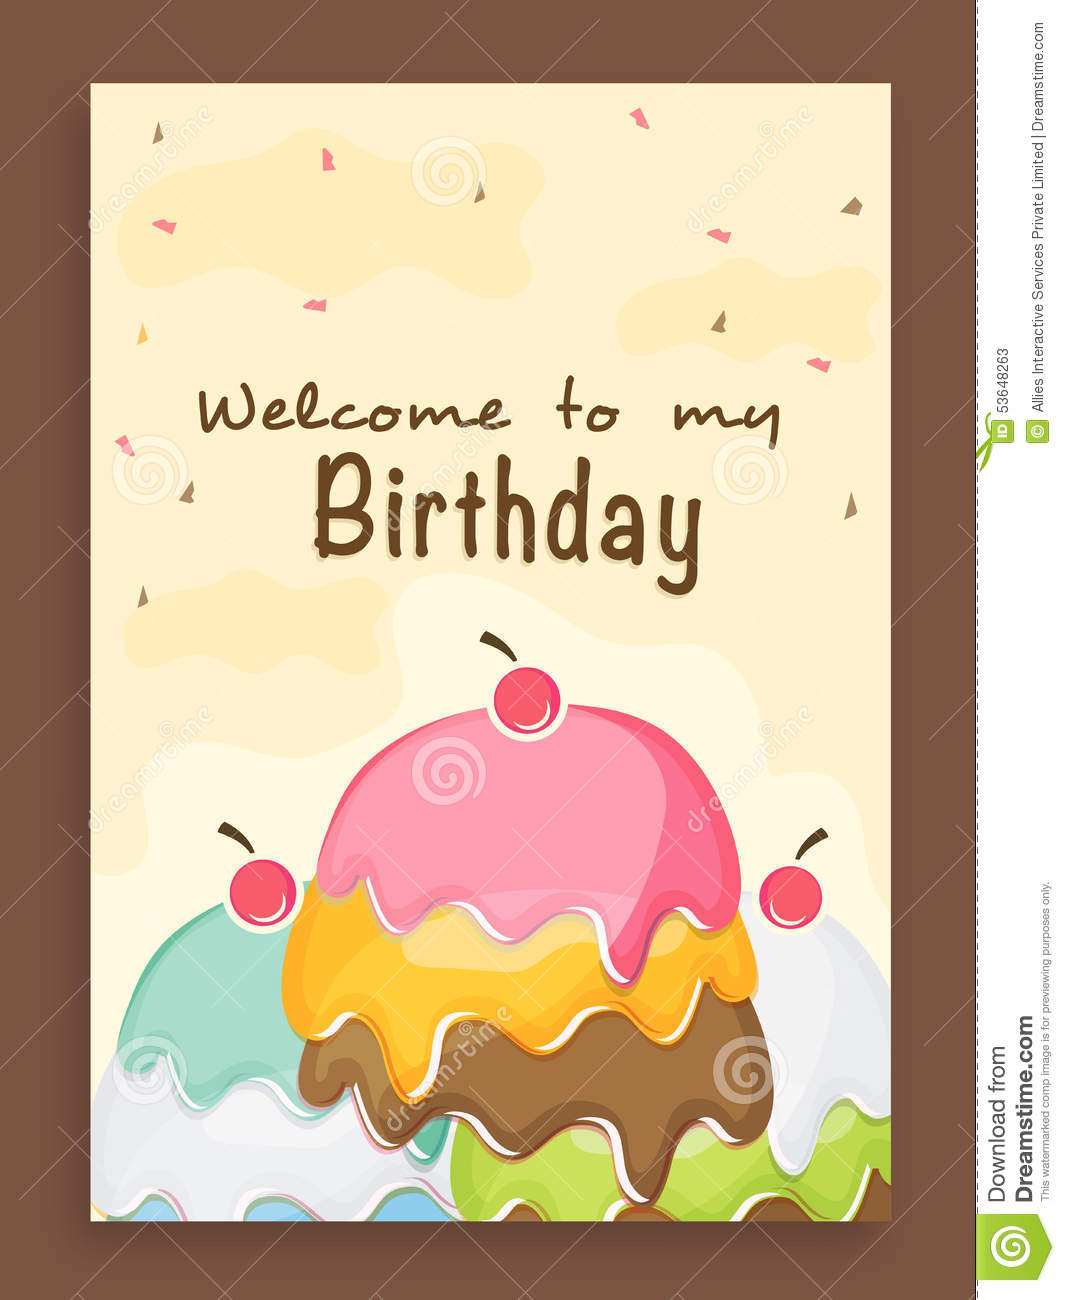 Invitation Card Design For Birthday Party. Stock Photo - Image ...